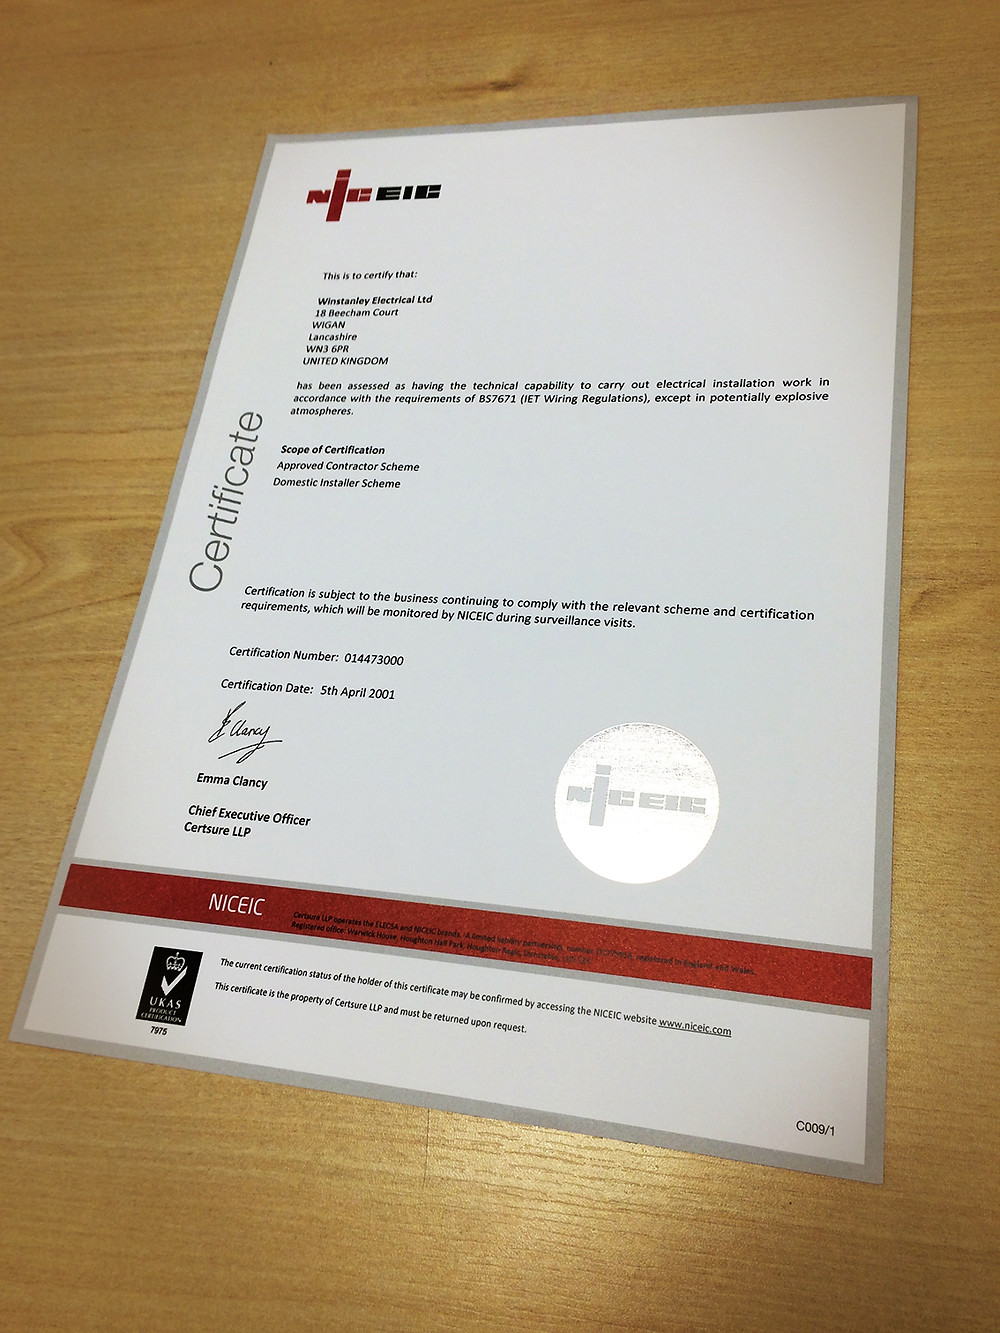 Continued Compliance - NICEIC